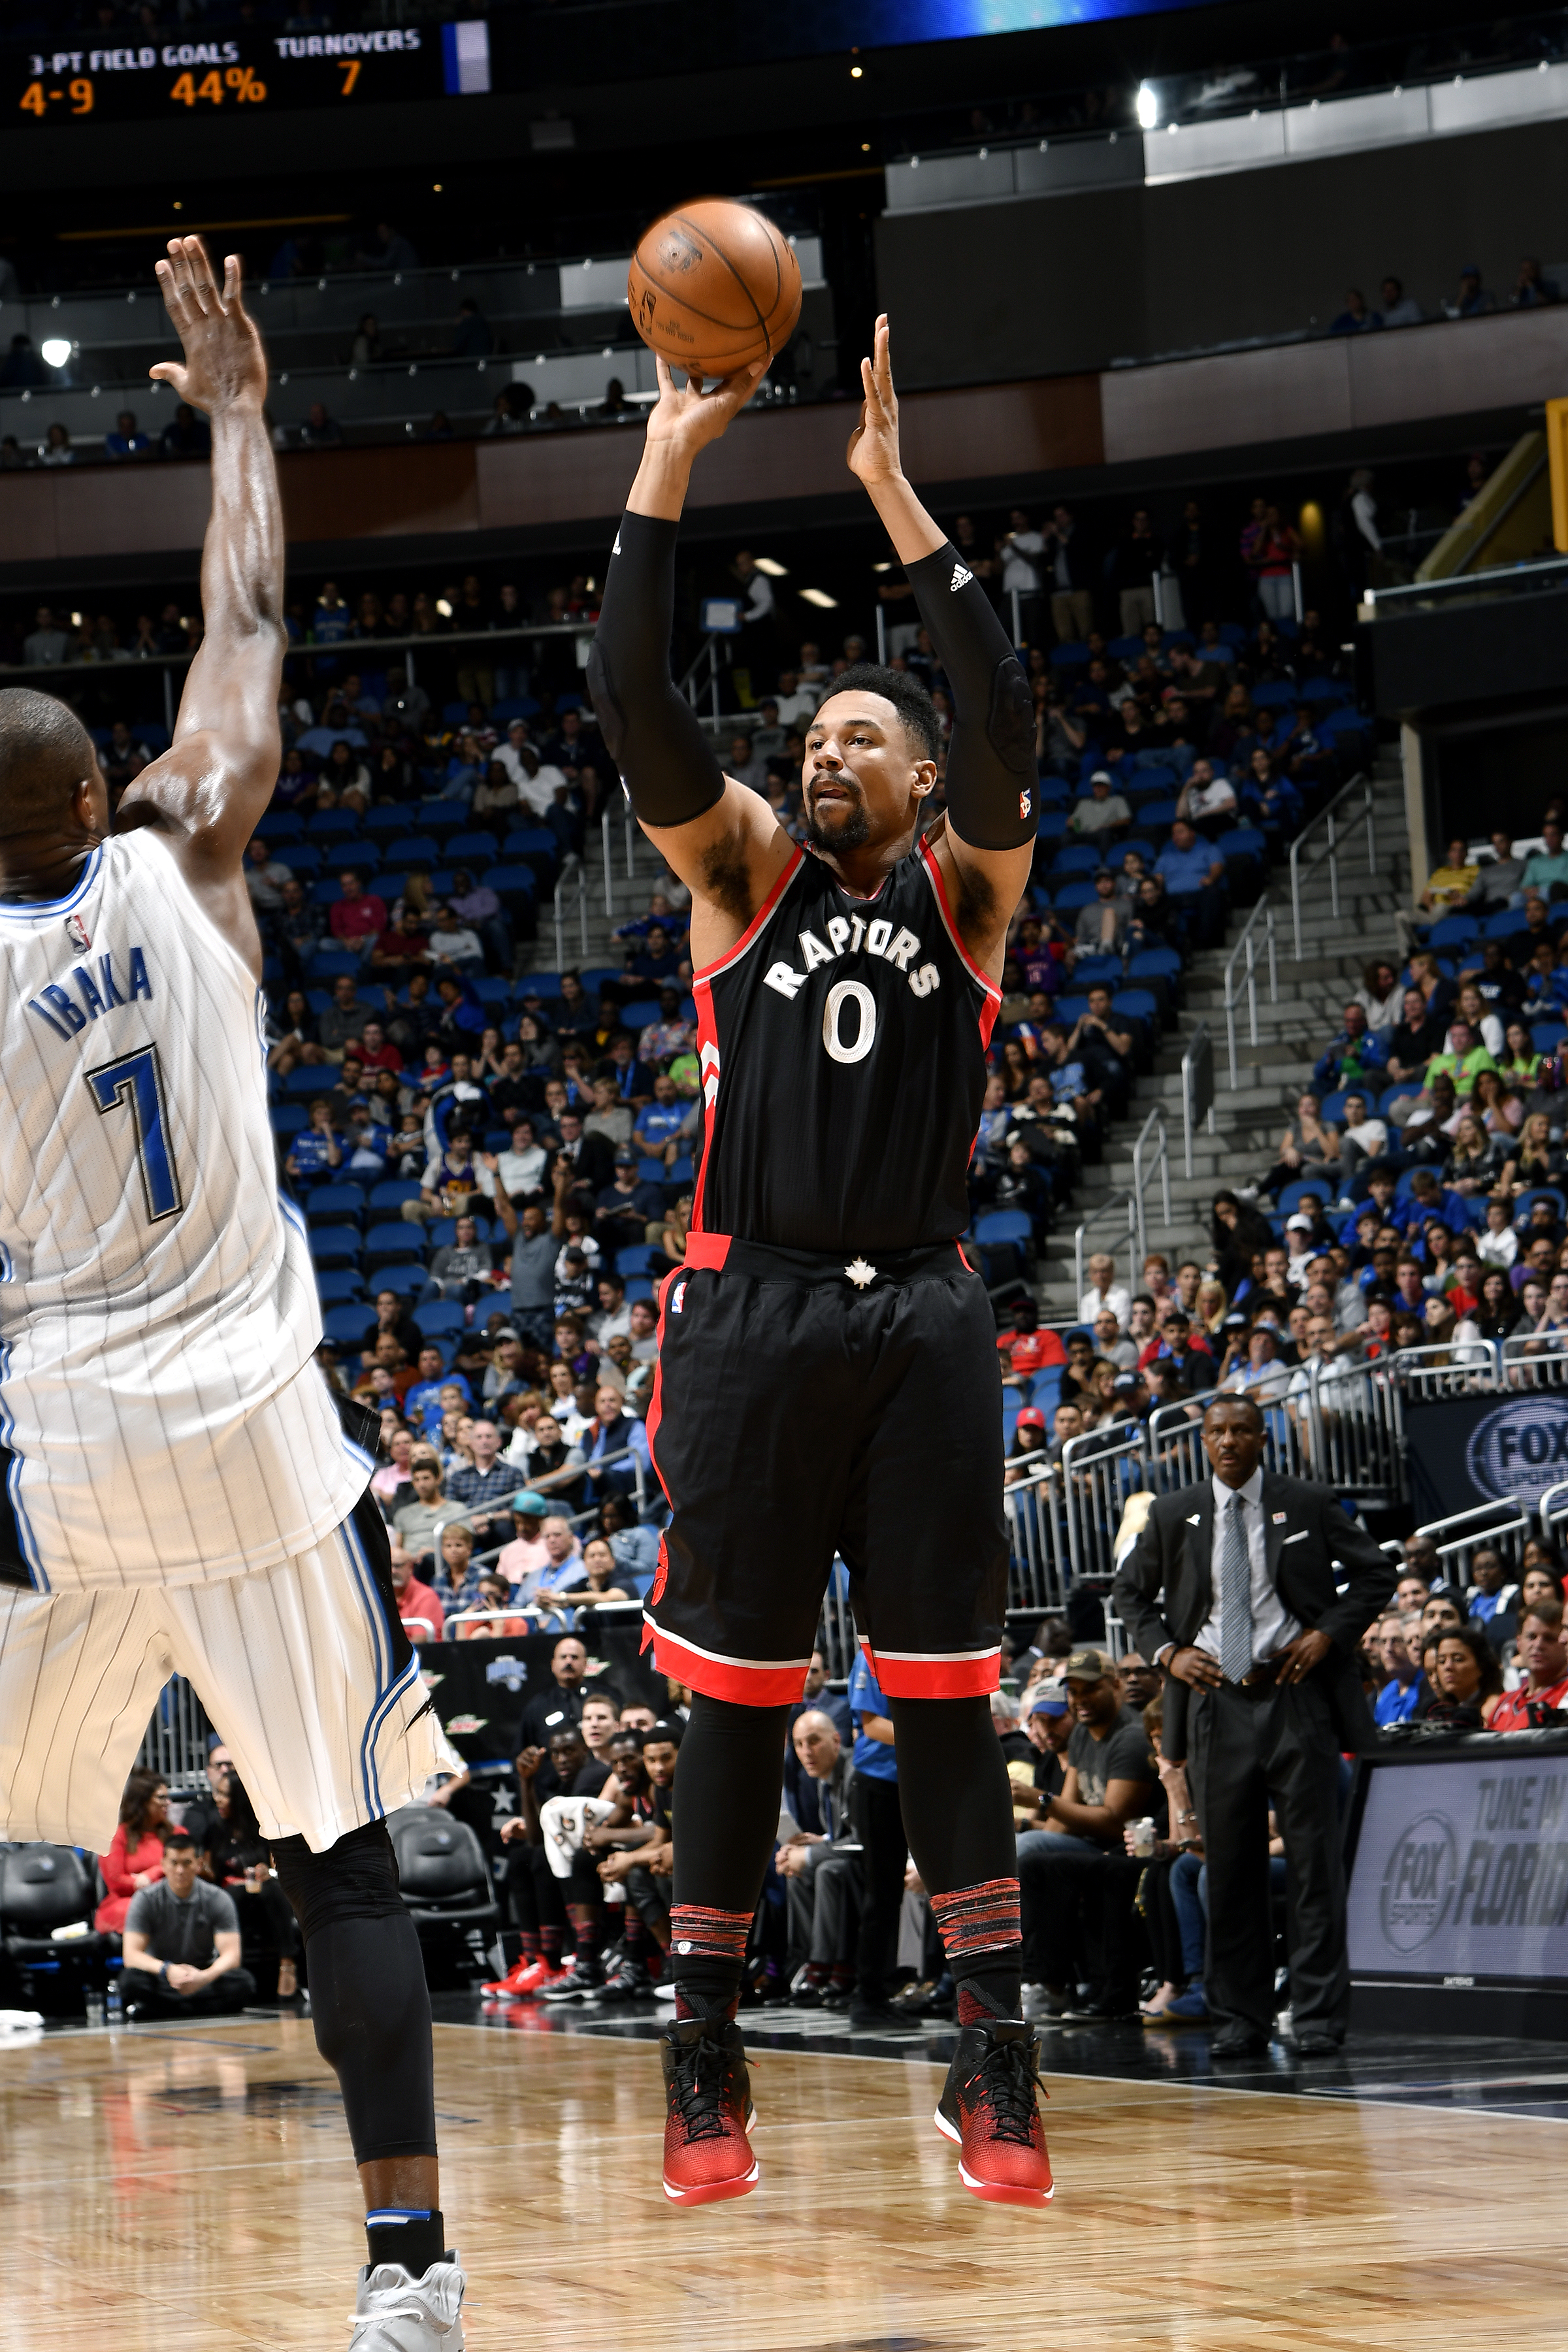 633737260-toronto-raptors-v-orlando-magic.jpg